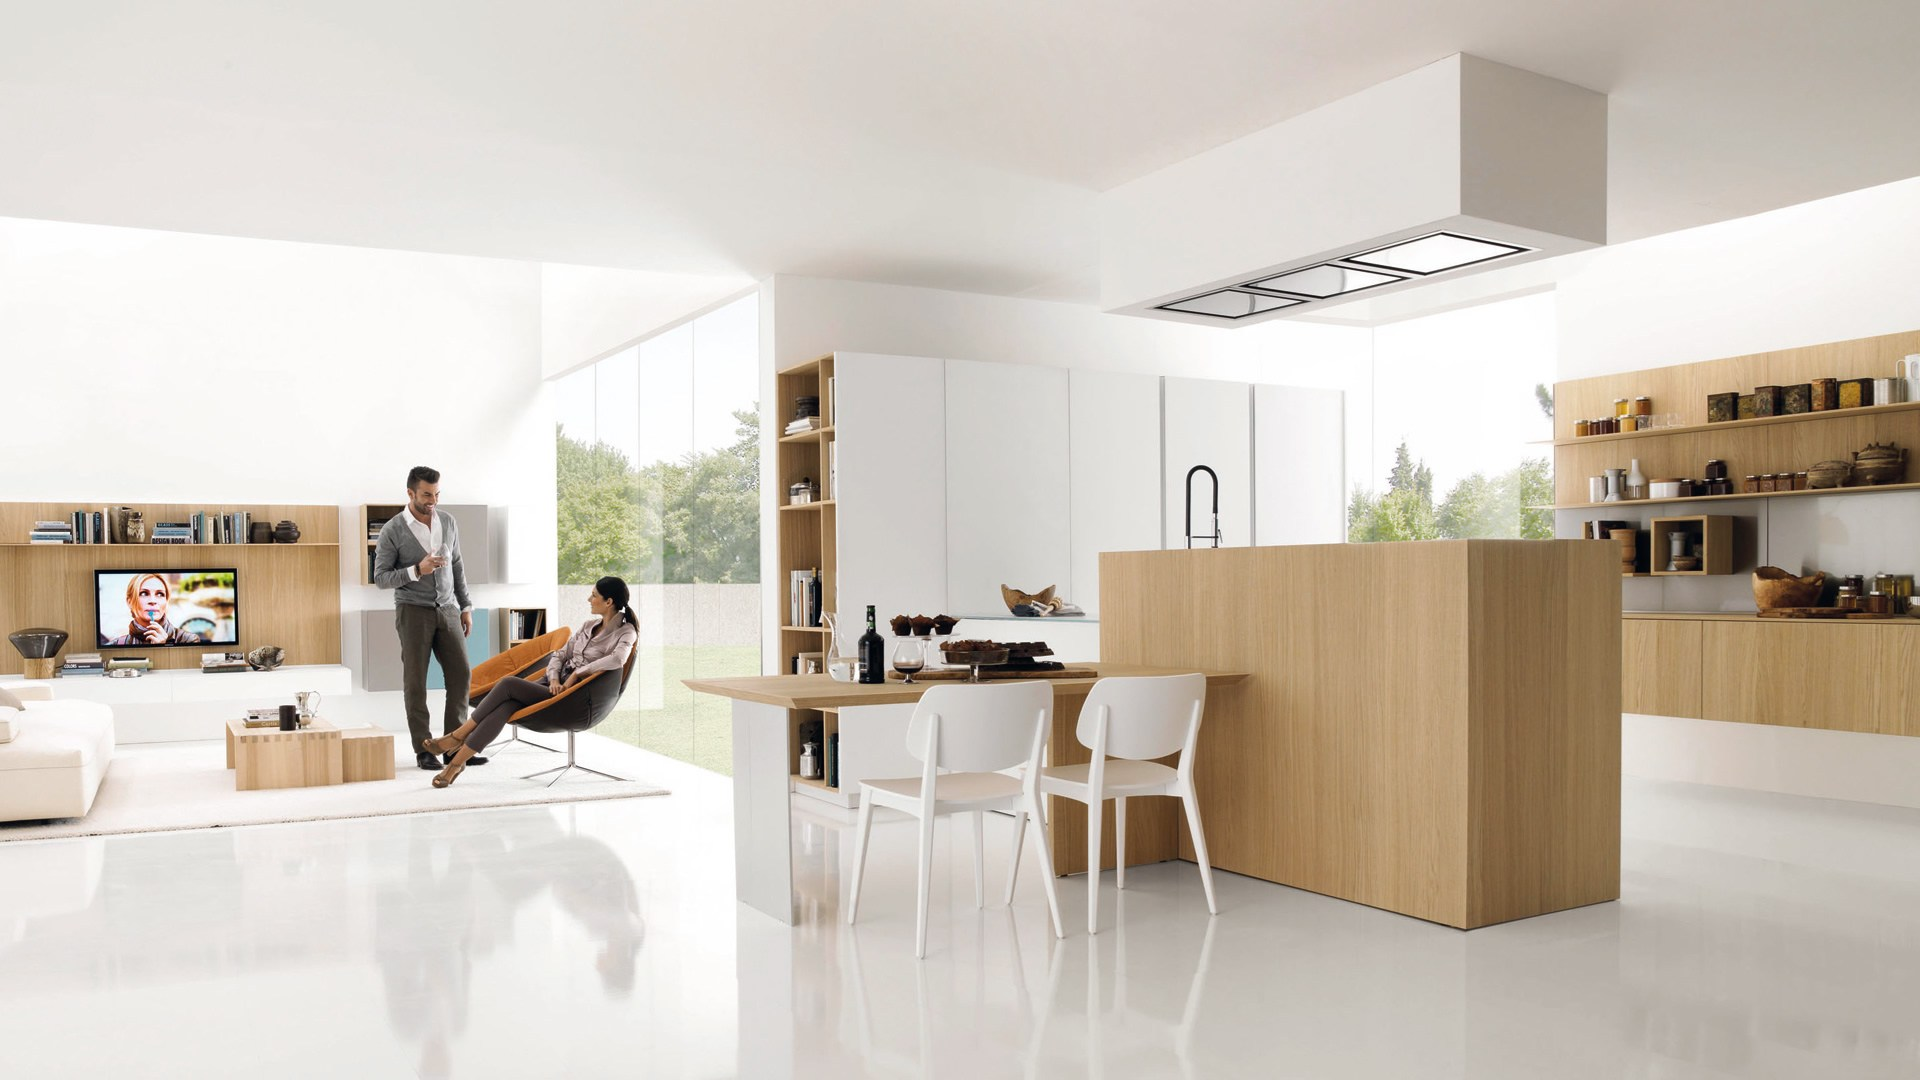 Wooden Fitted Kitchen KUBIC 3 By Euromobil Design Roberto Gobbo #9B6330 1920 1080 Cucine Moderne E Living